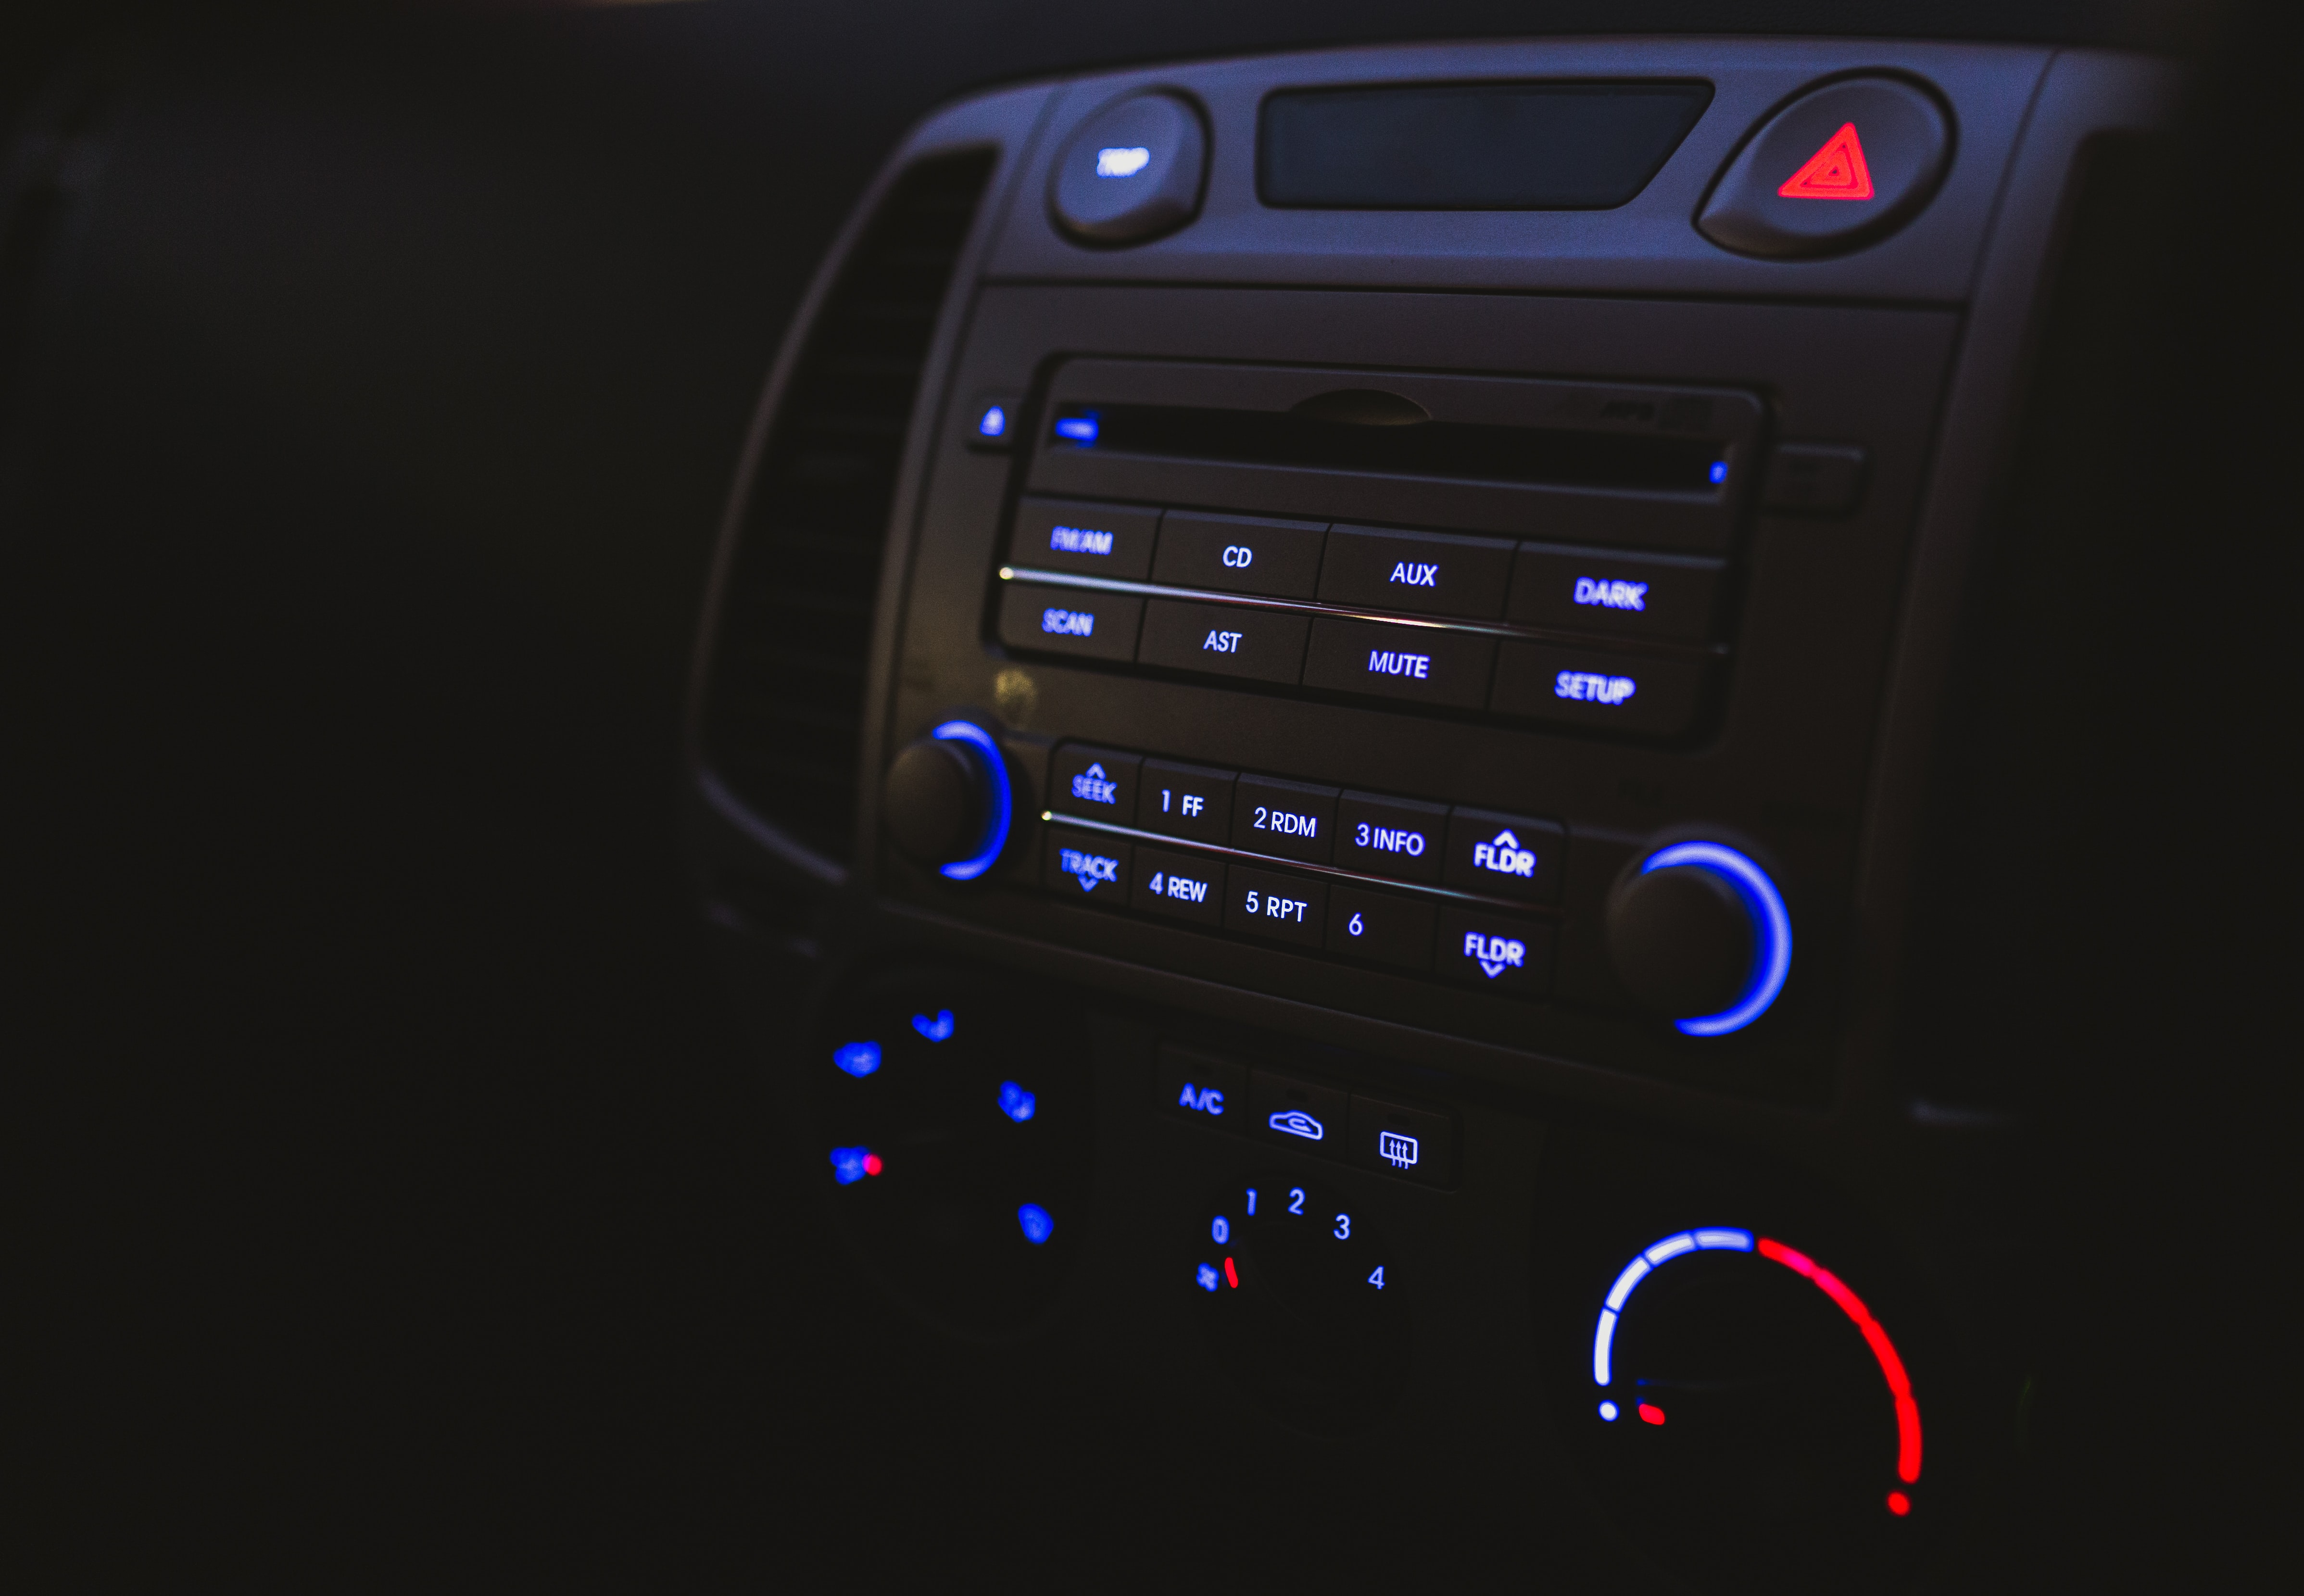 A dim shot of a car radio with gauges and buttons lighting up in red and blue